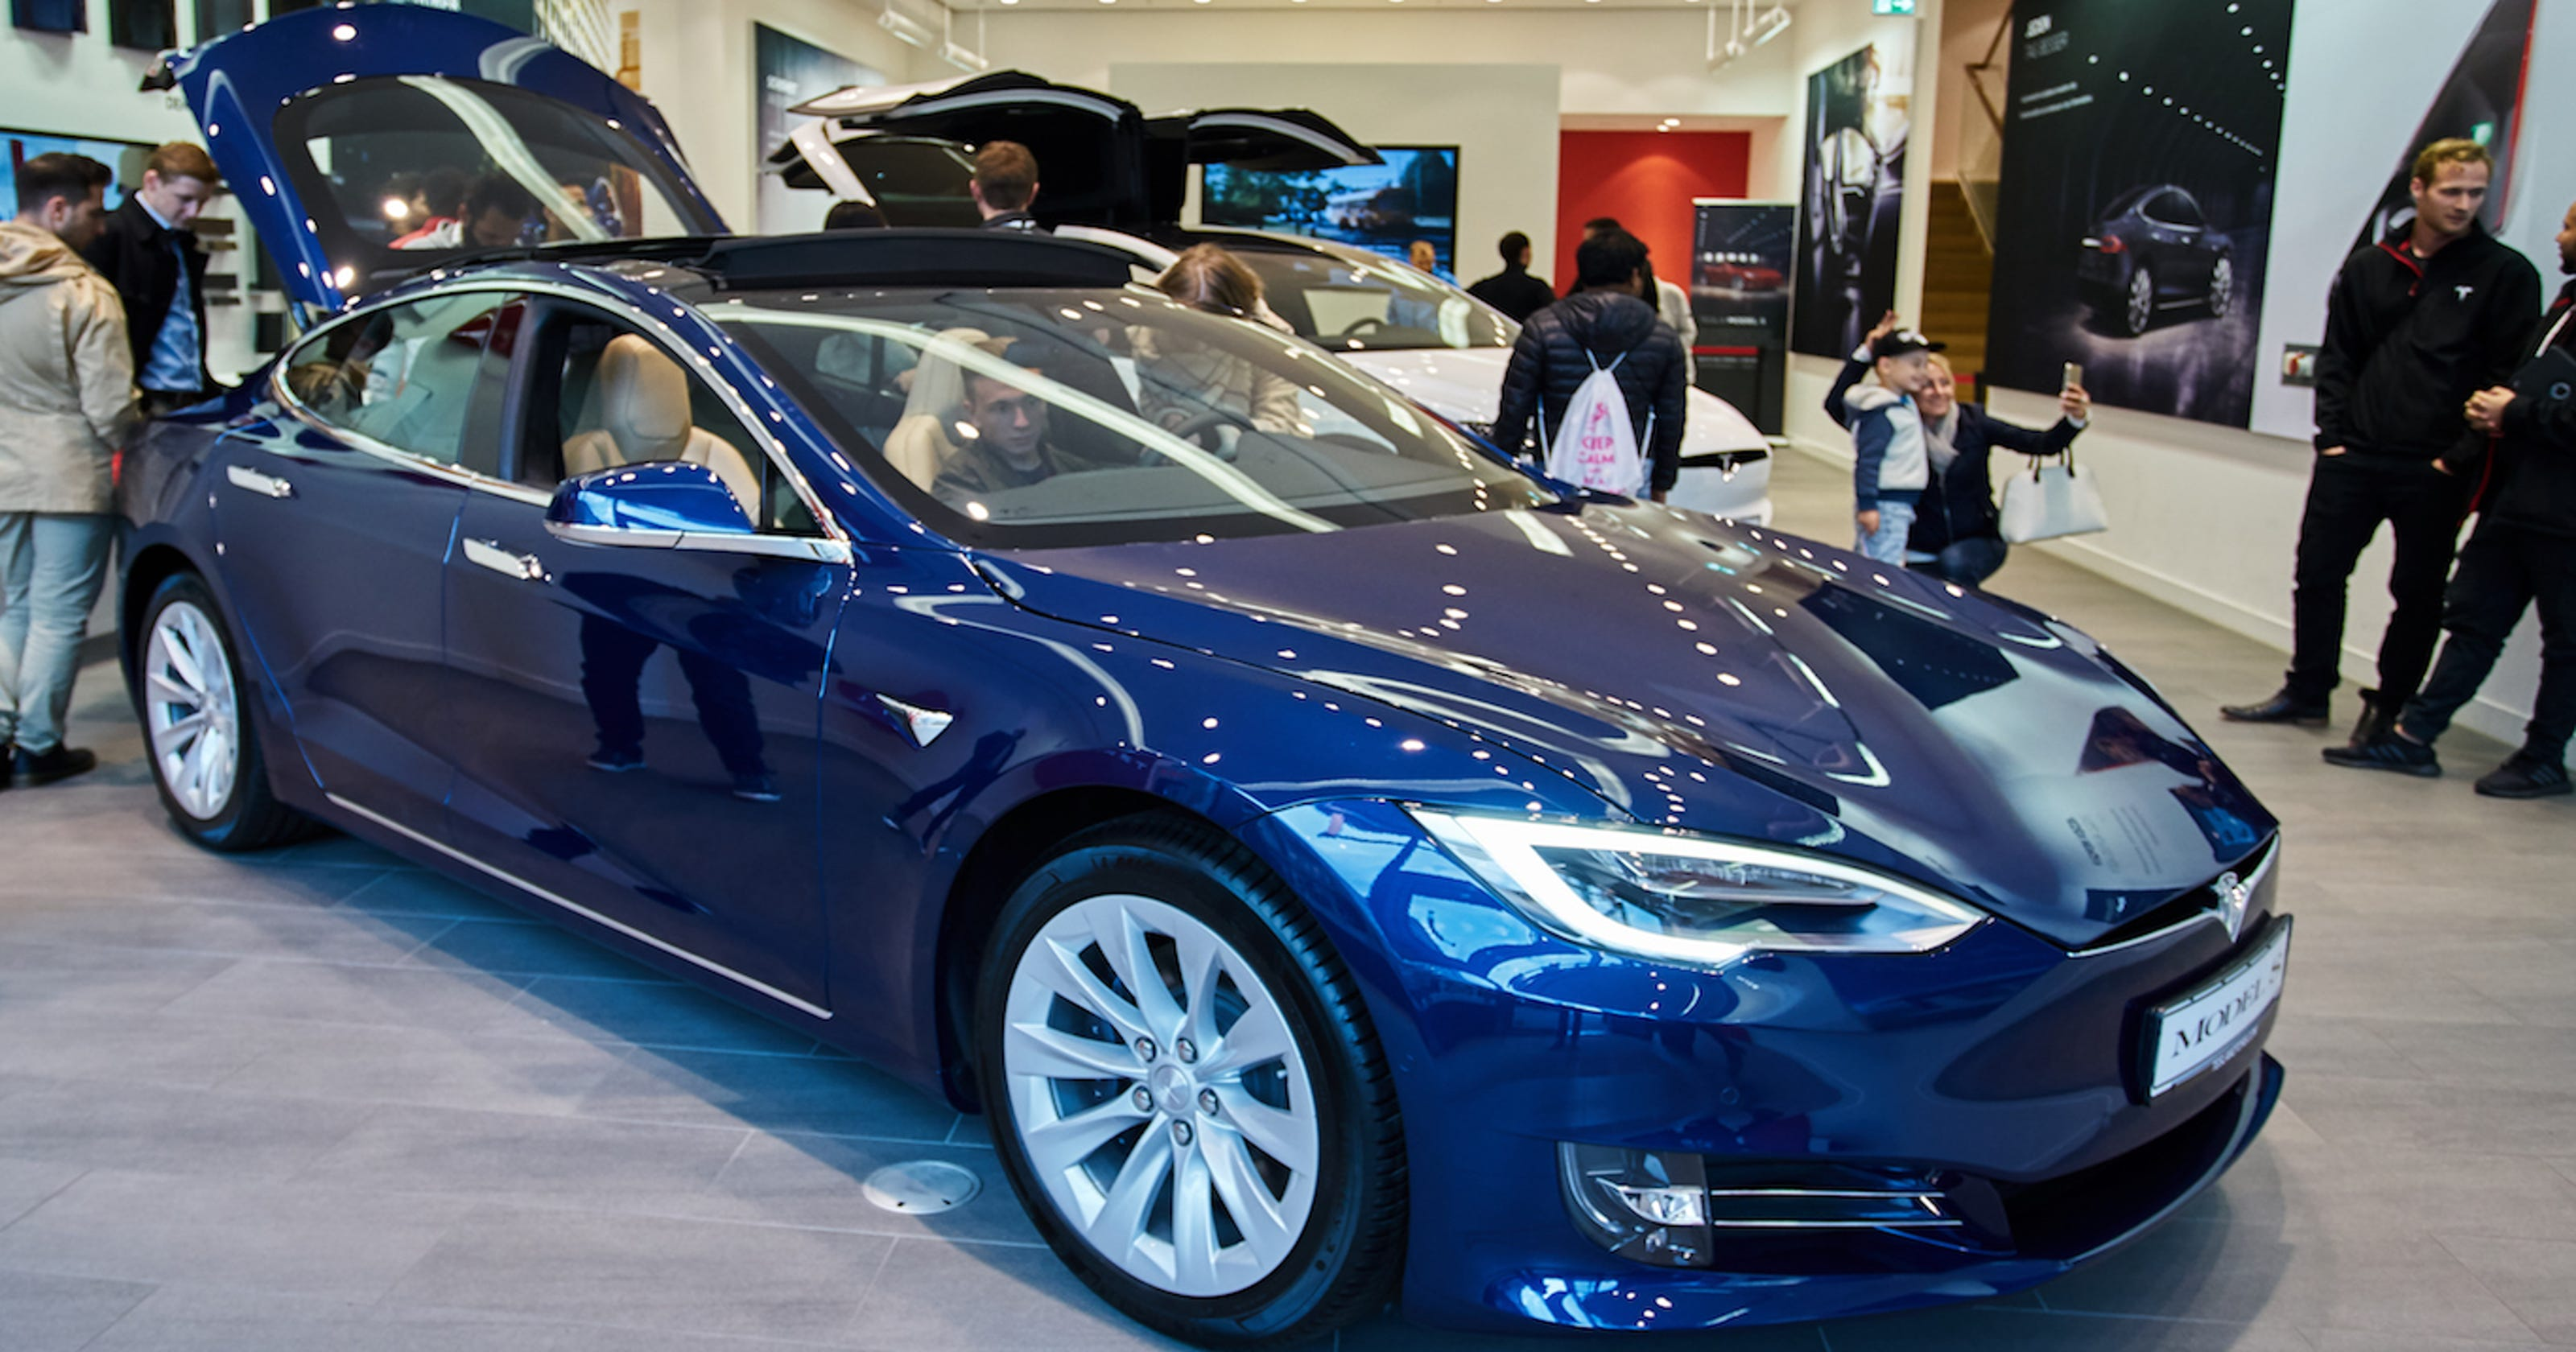 Tesla reliability falls in Consumer Reports survey